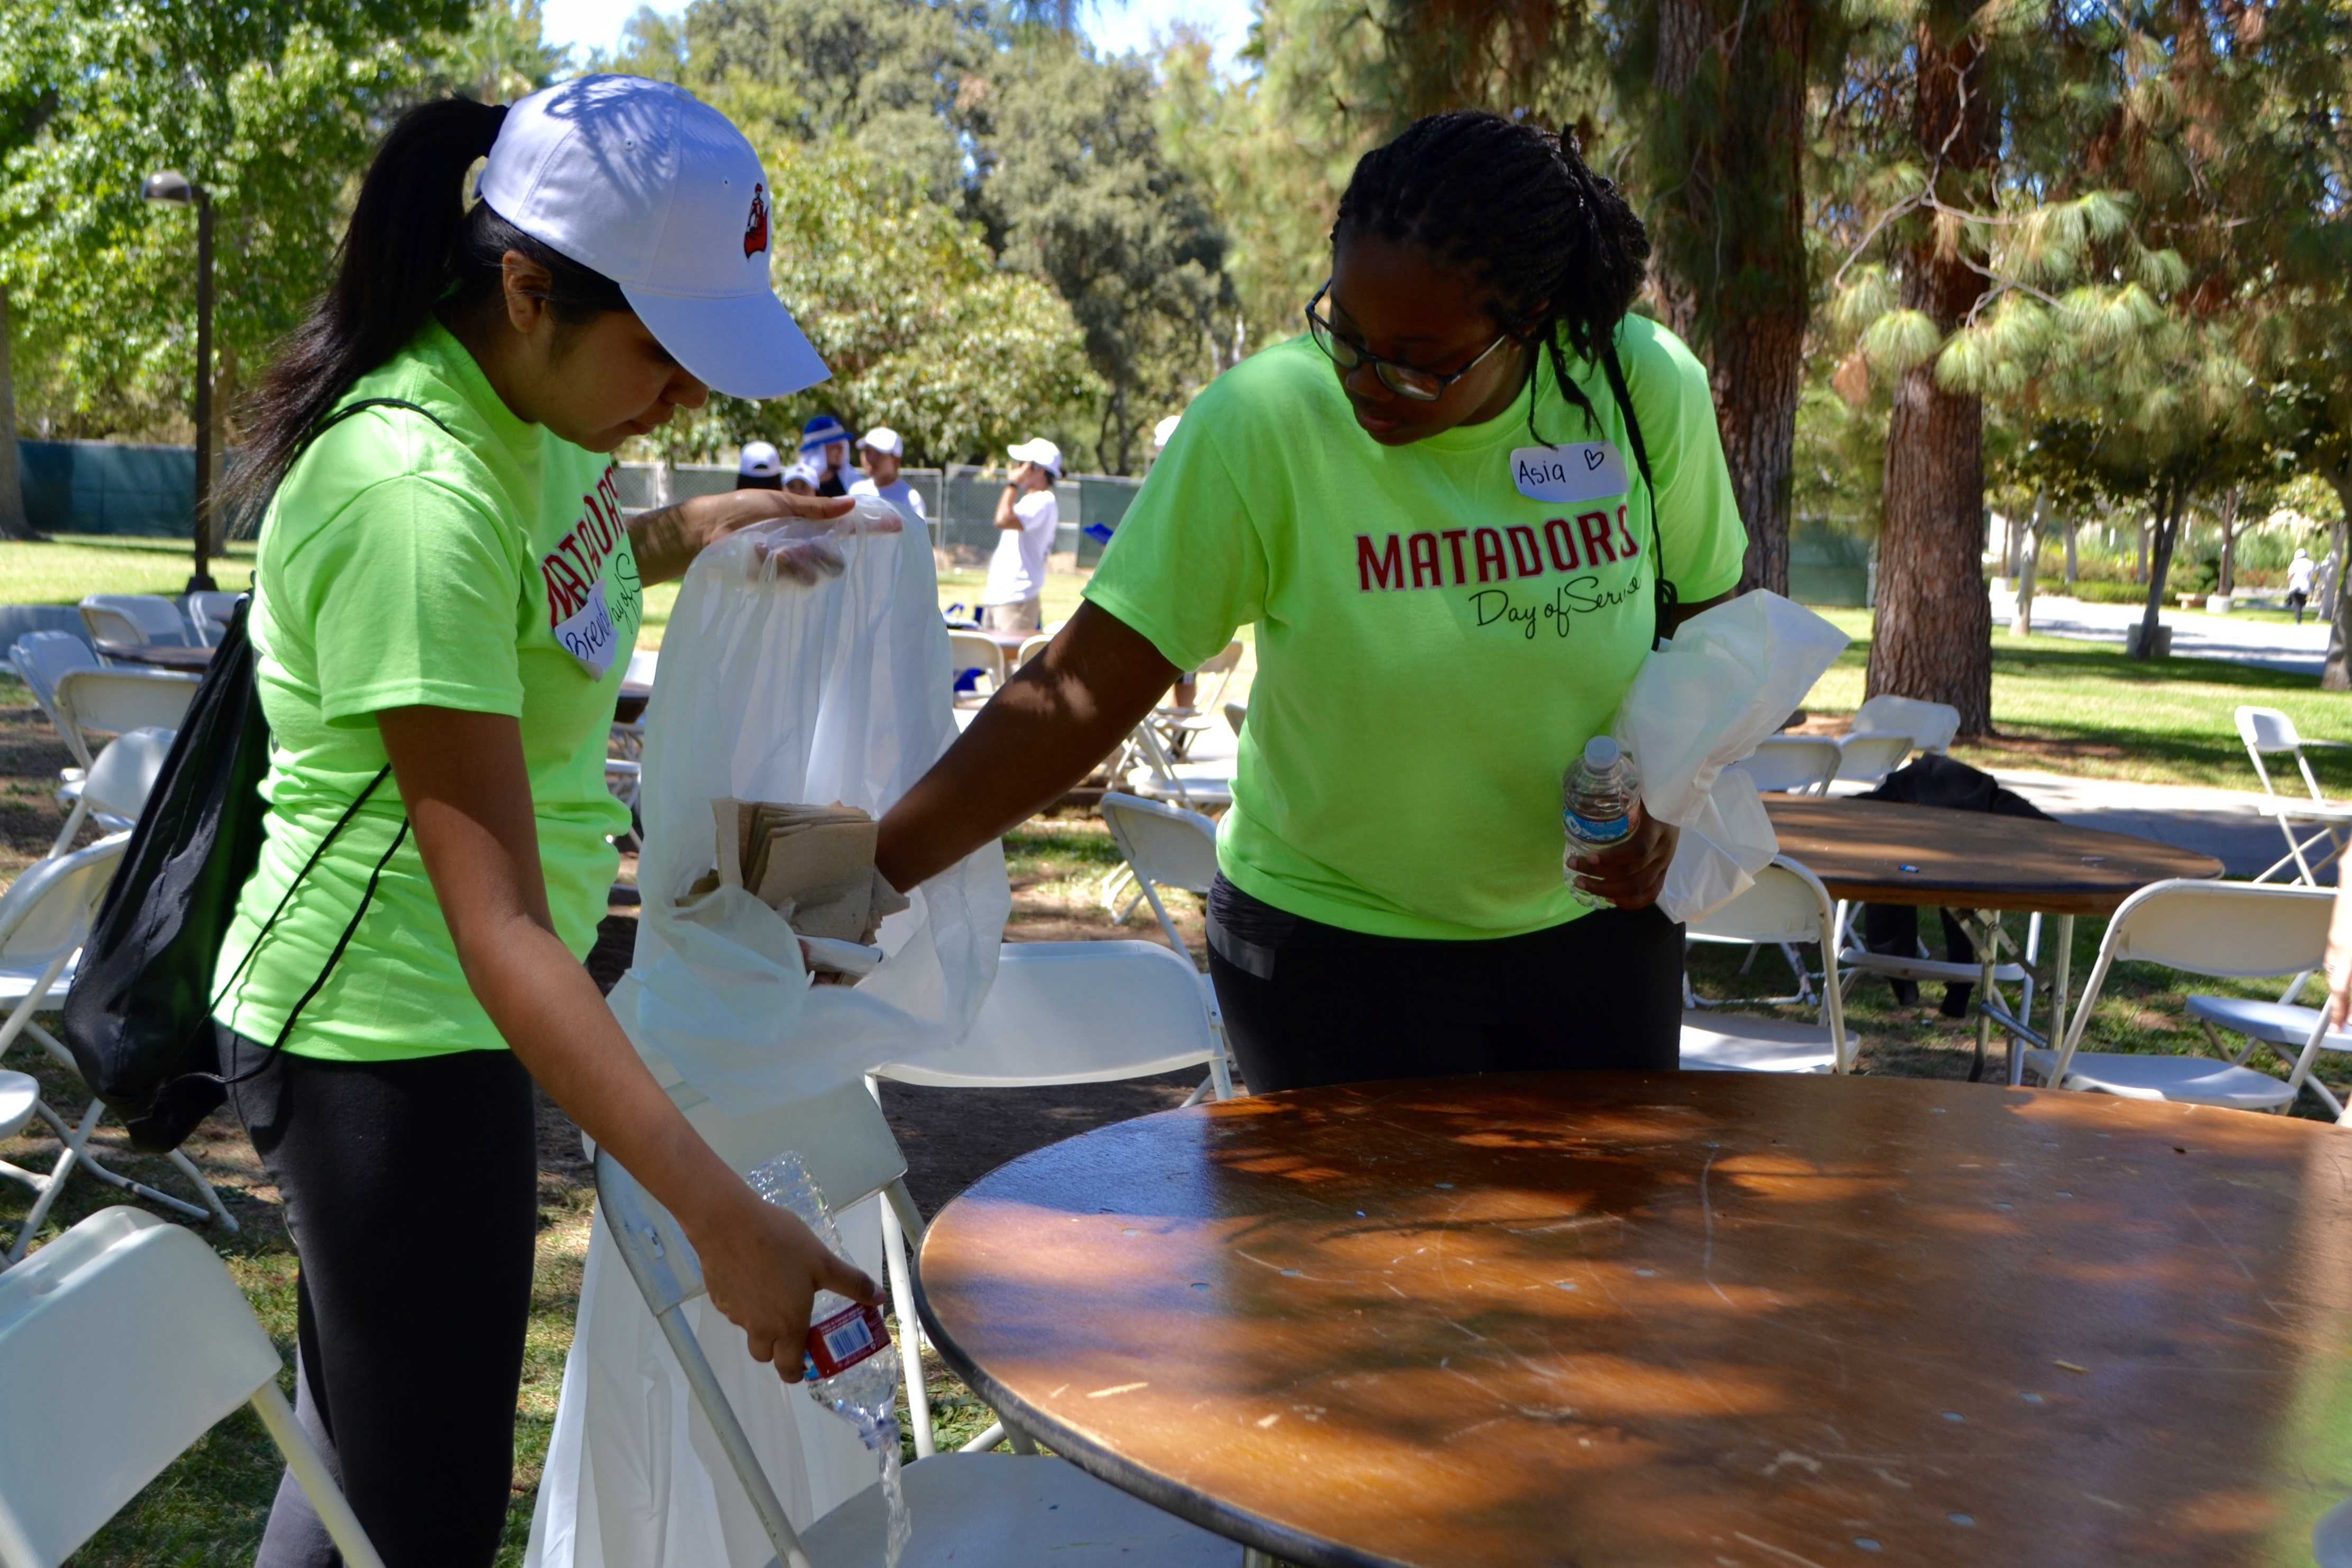 CSUN Matadors Beautify Their Neighborhood